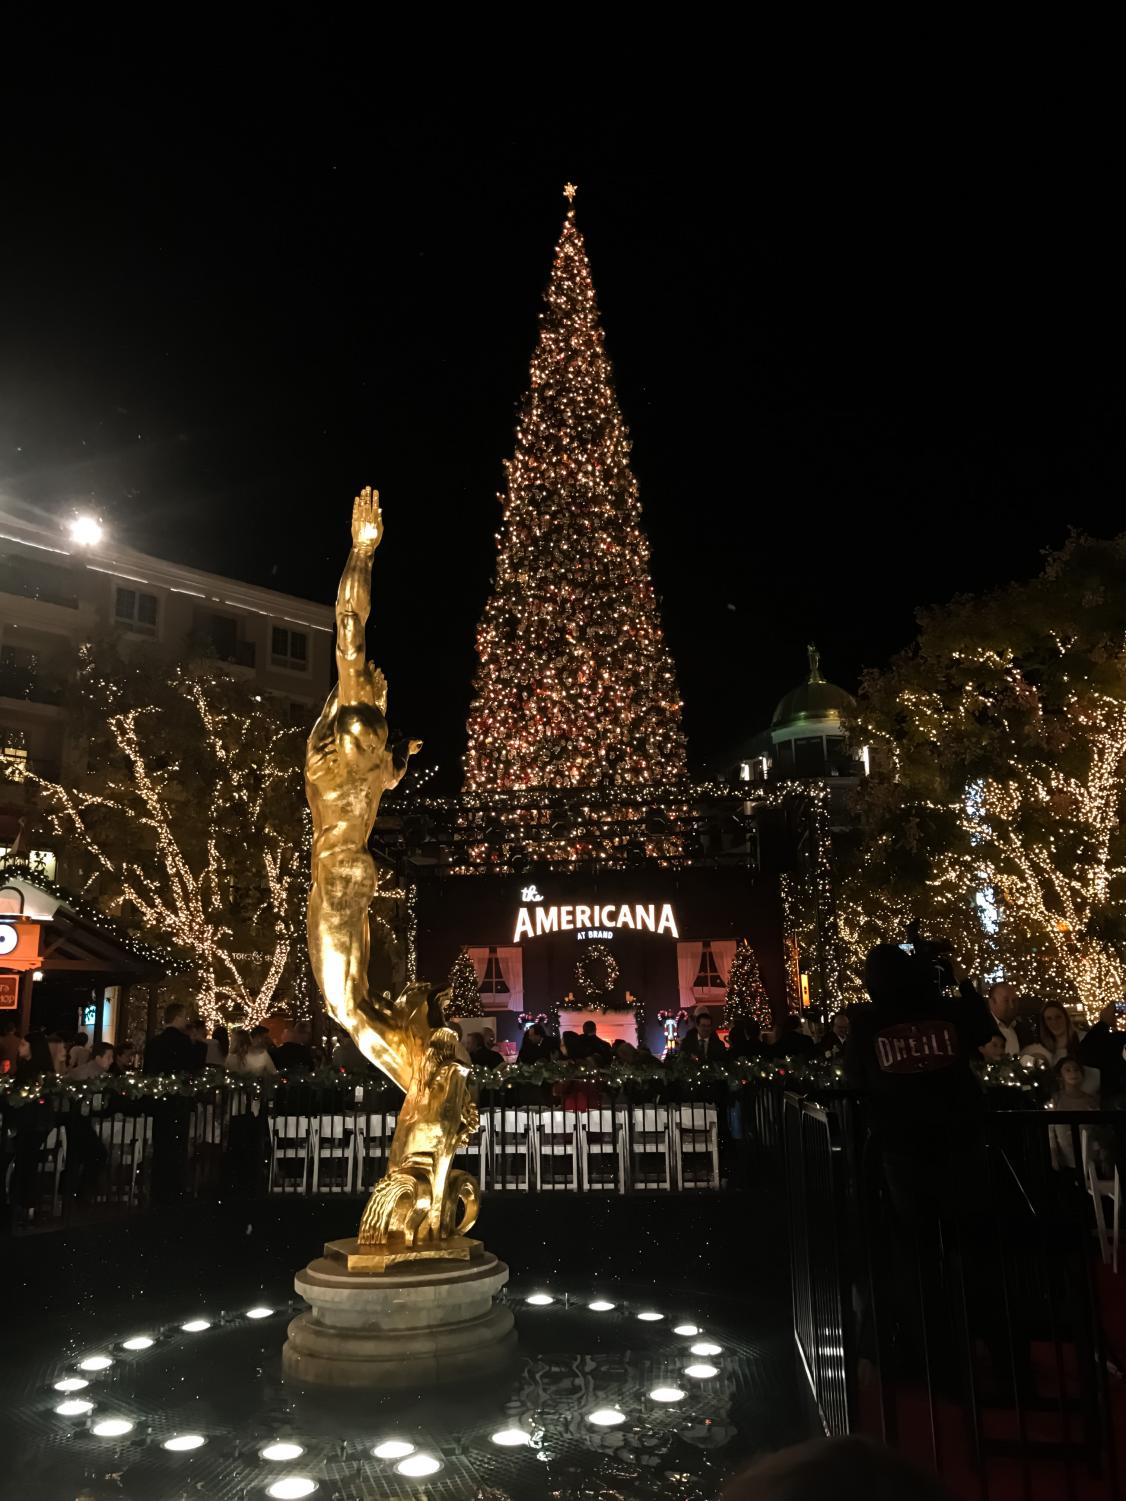 The Americana in Glendale all ready for Christmas.